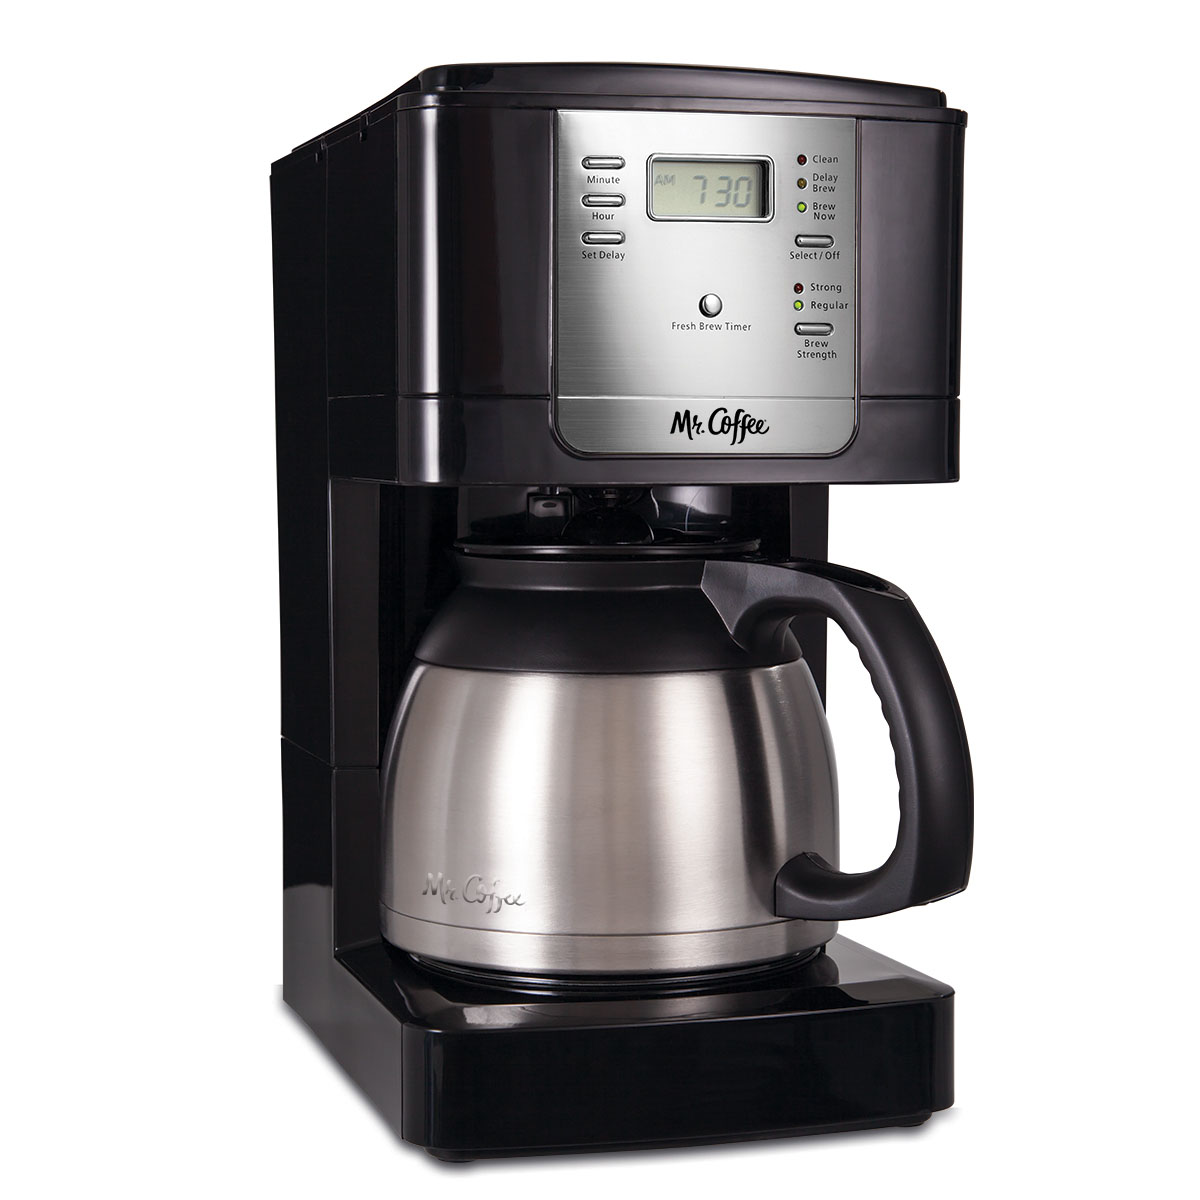 Mr. Coffee 8 Cup Thermal Programmable Stainless Steel Coffee Maker, 1 Each